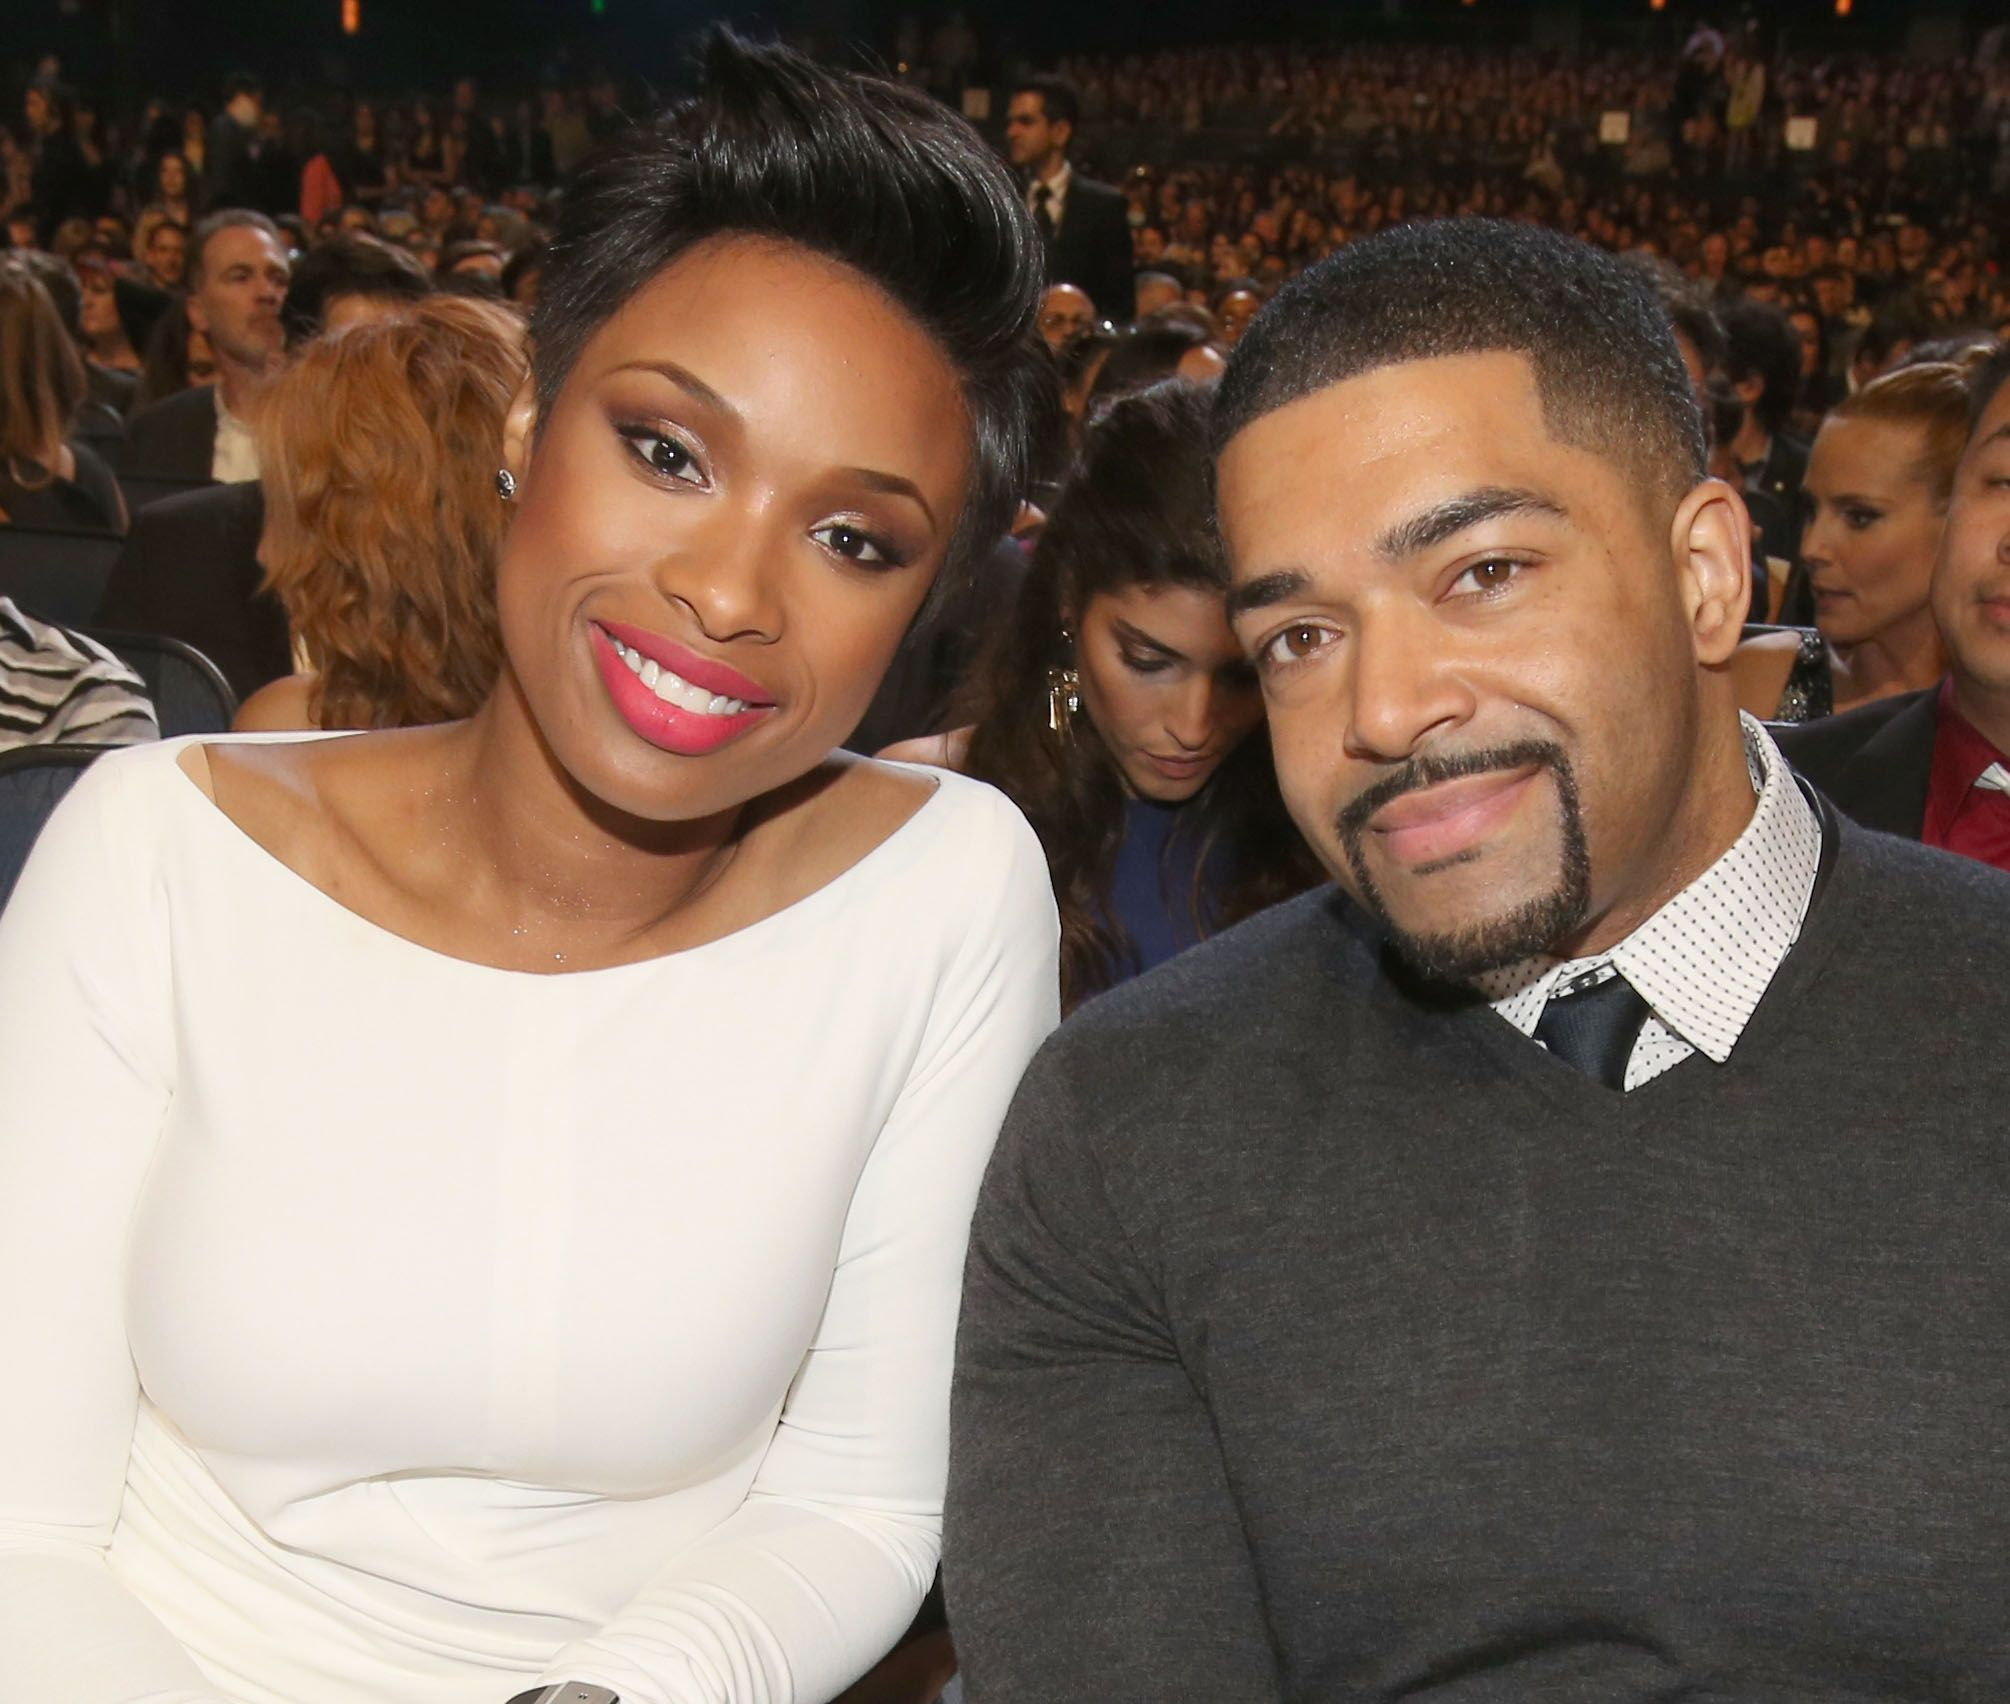 Jennifer Hudson and pro wrestler/actor David Otunga at The 40th Annual People's Choice Awards at Nokia Theatre L.A. Live on January 8, 2014 | Photo: Getty Images